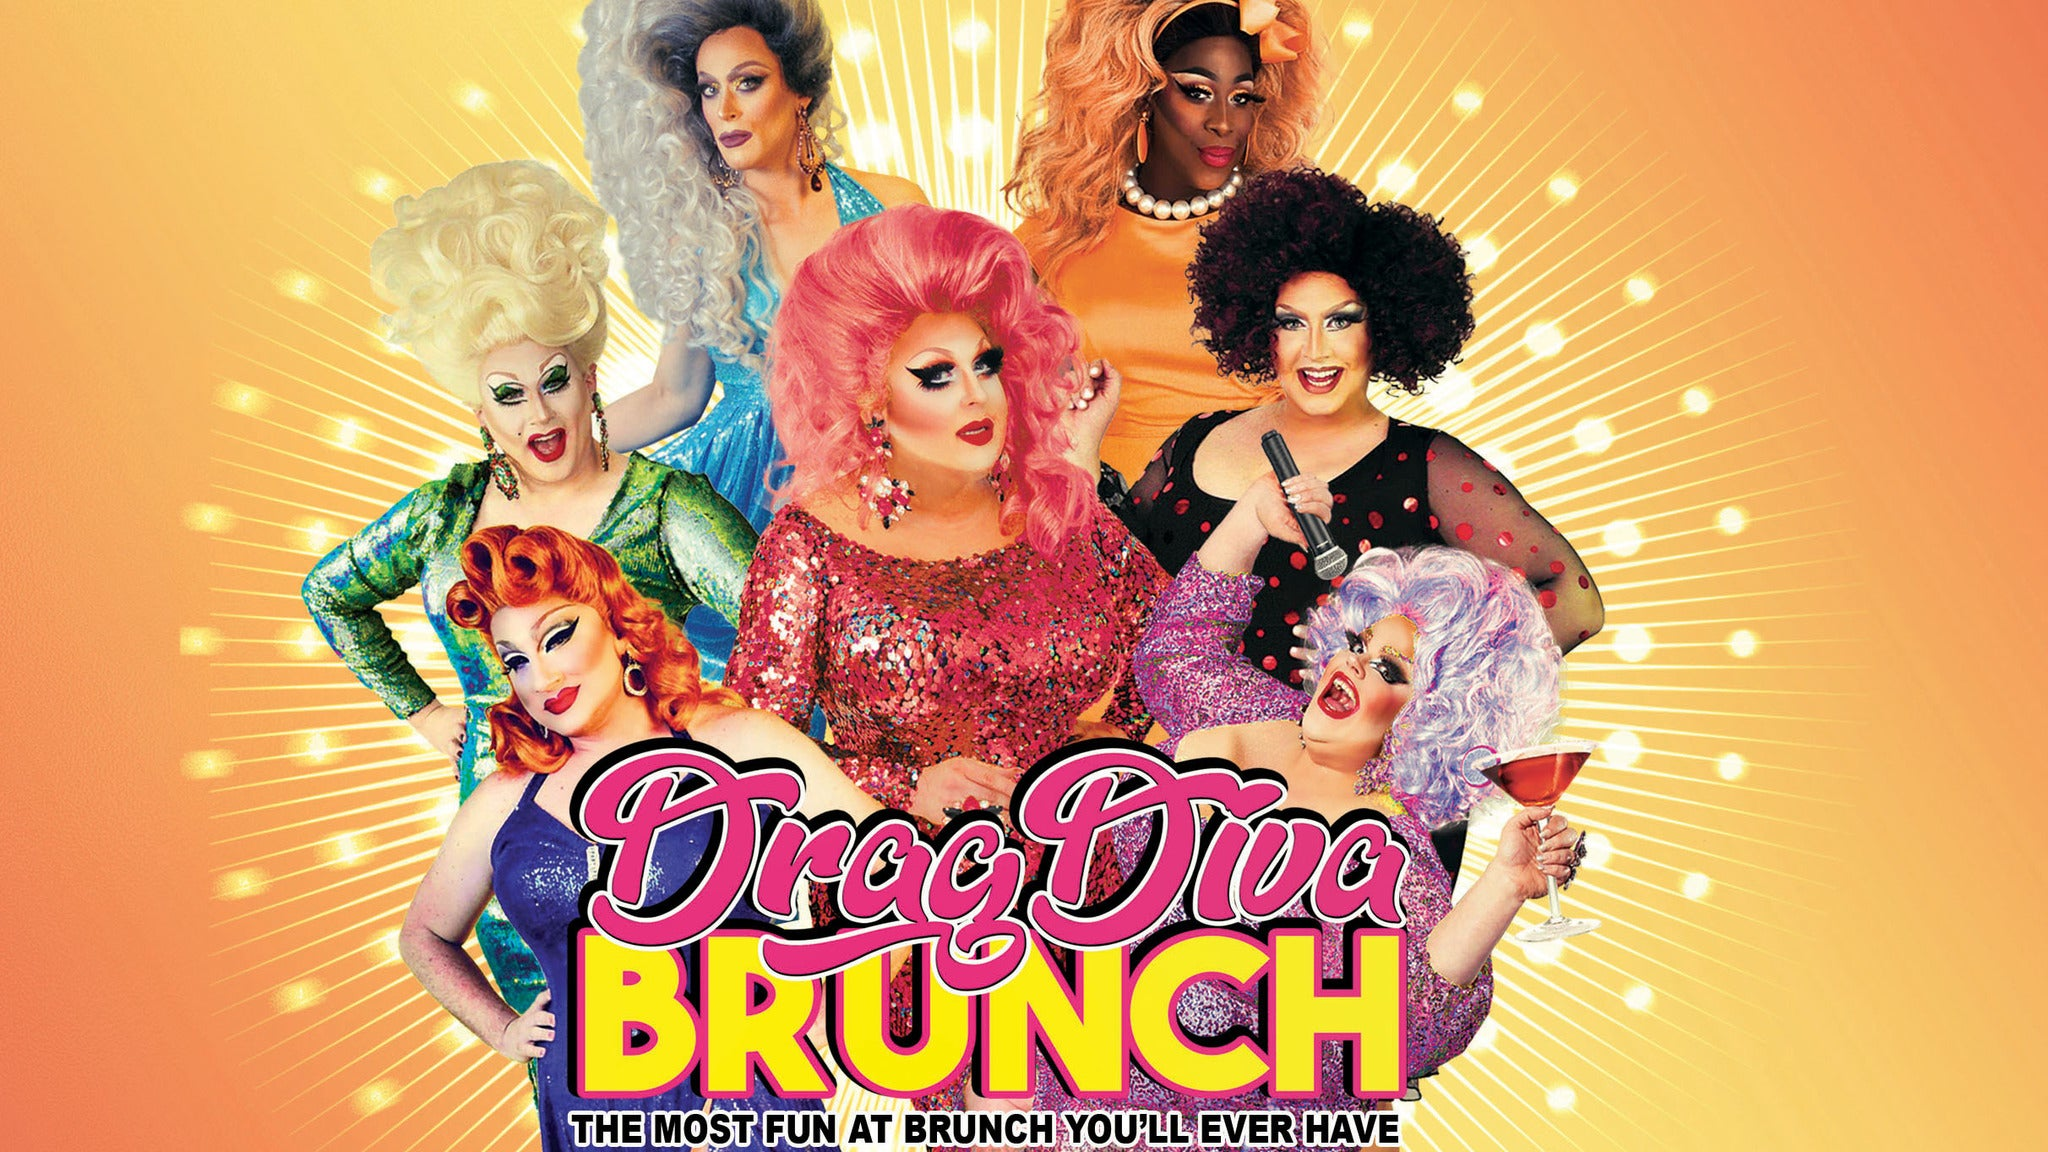 Drag Diva Brunch at The Queen